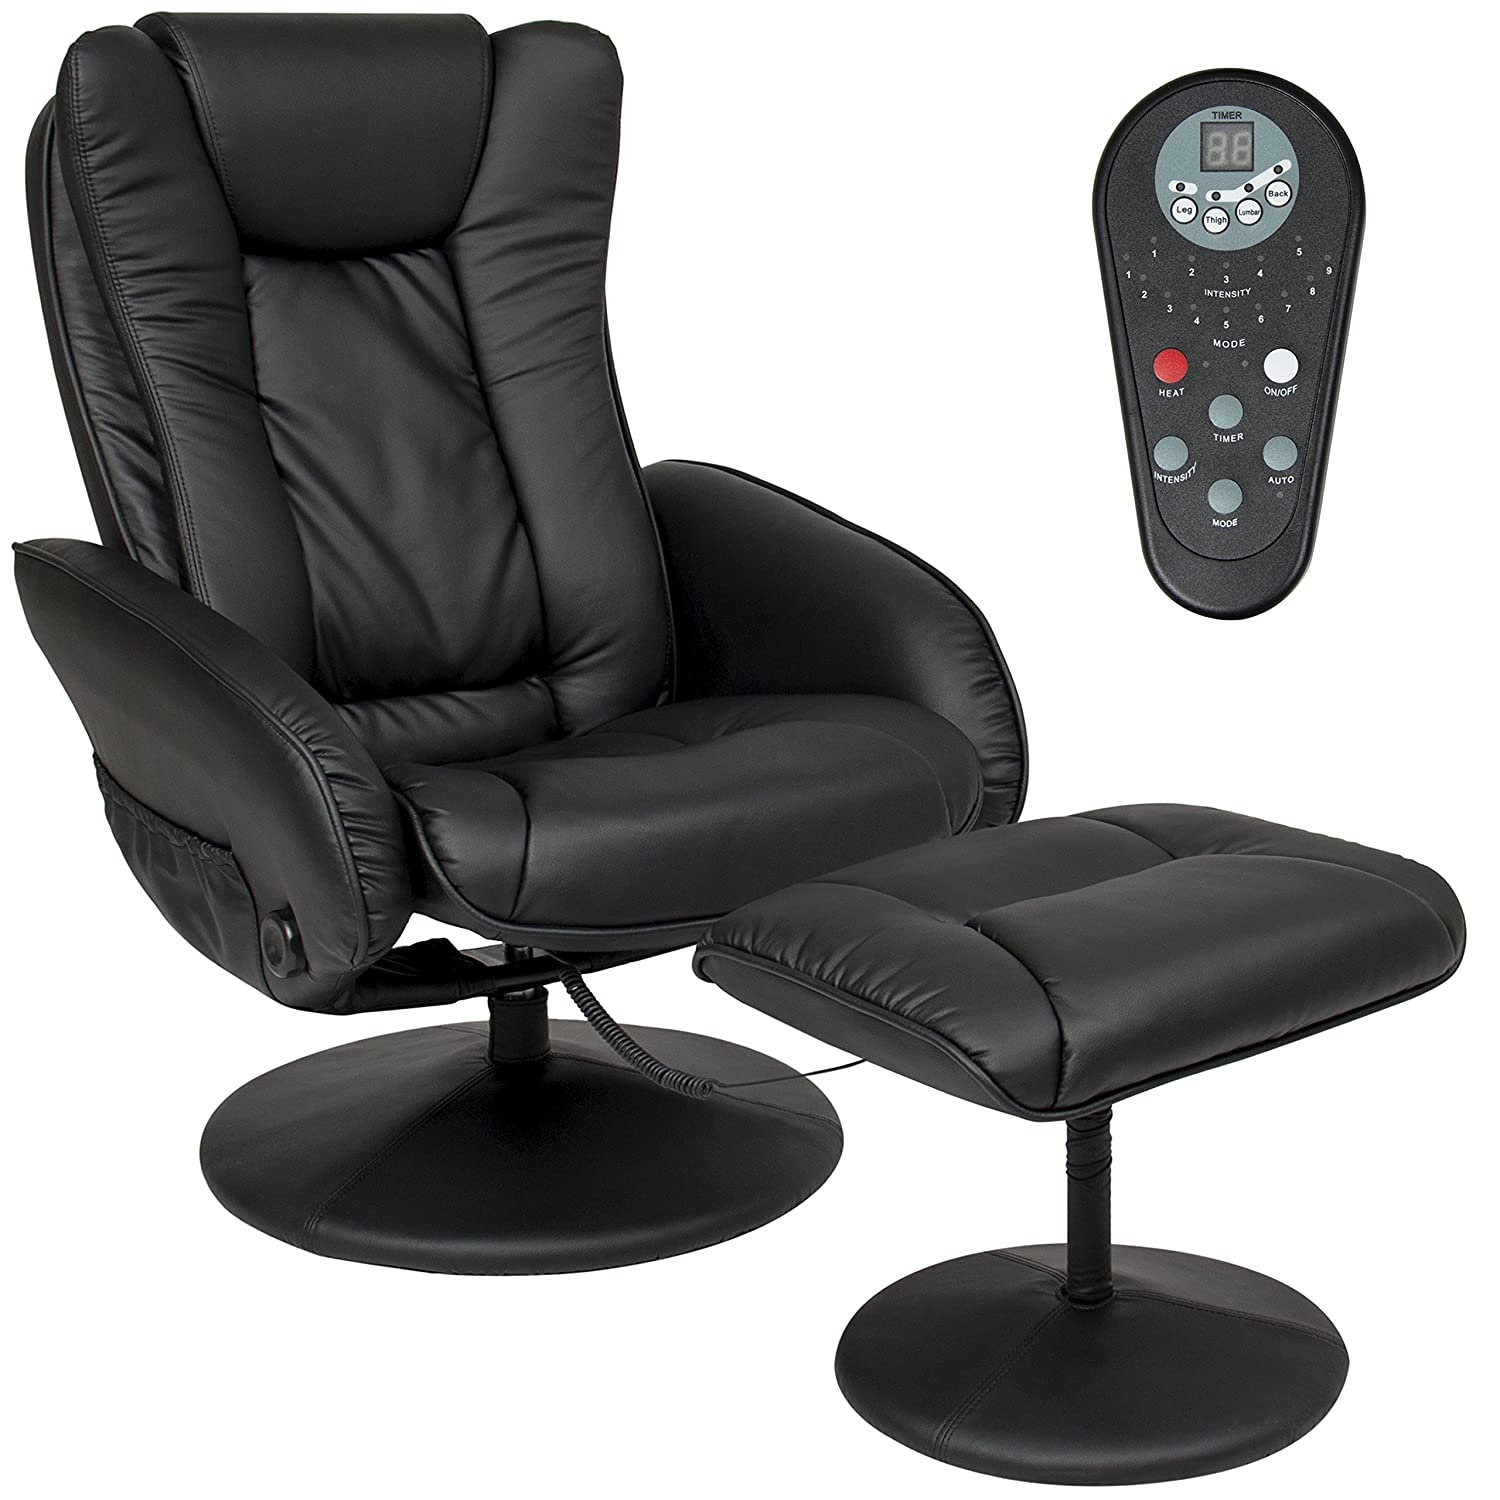 Best Choice Products SKY2891 Massage Chair Black Friday Deals 2020